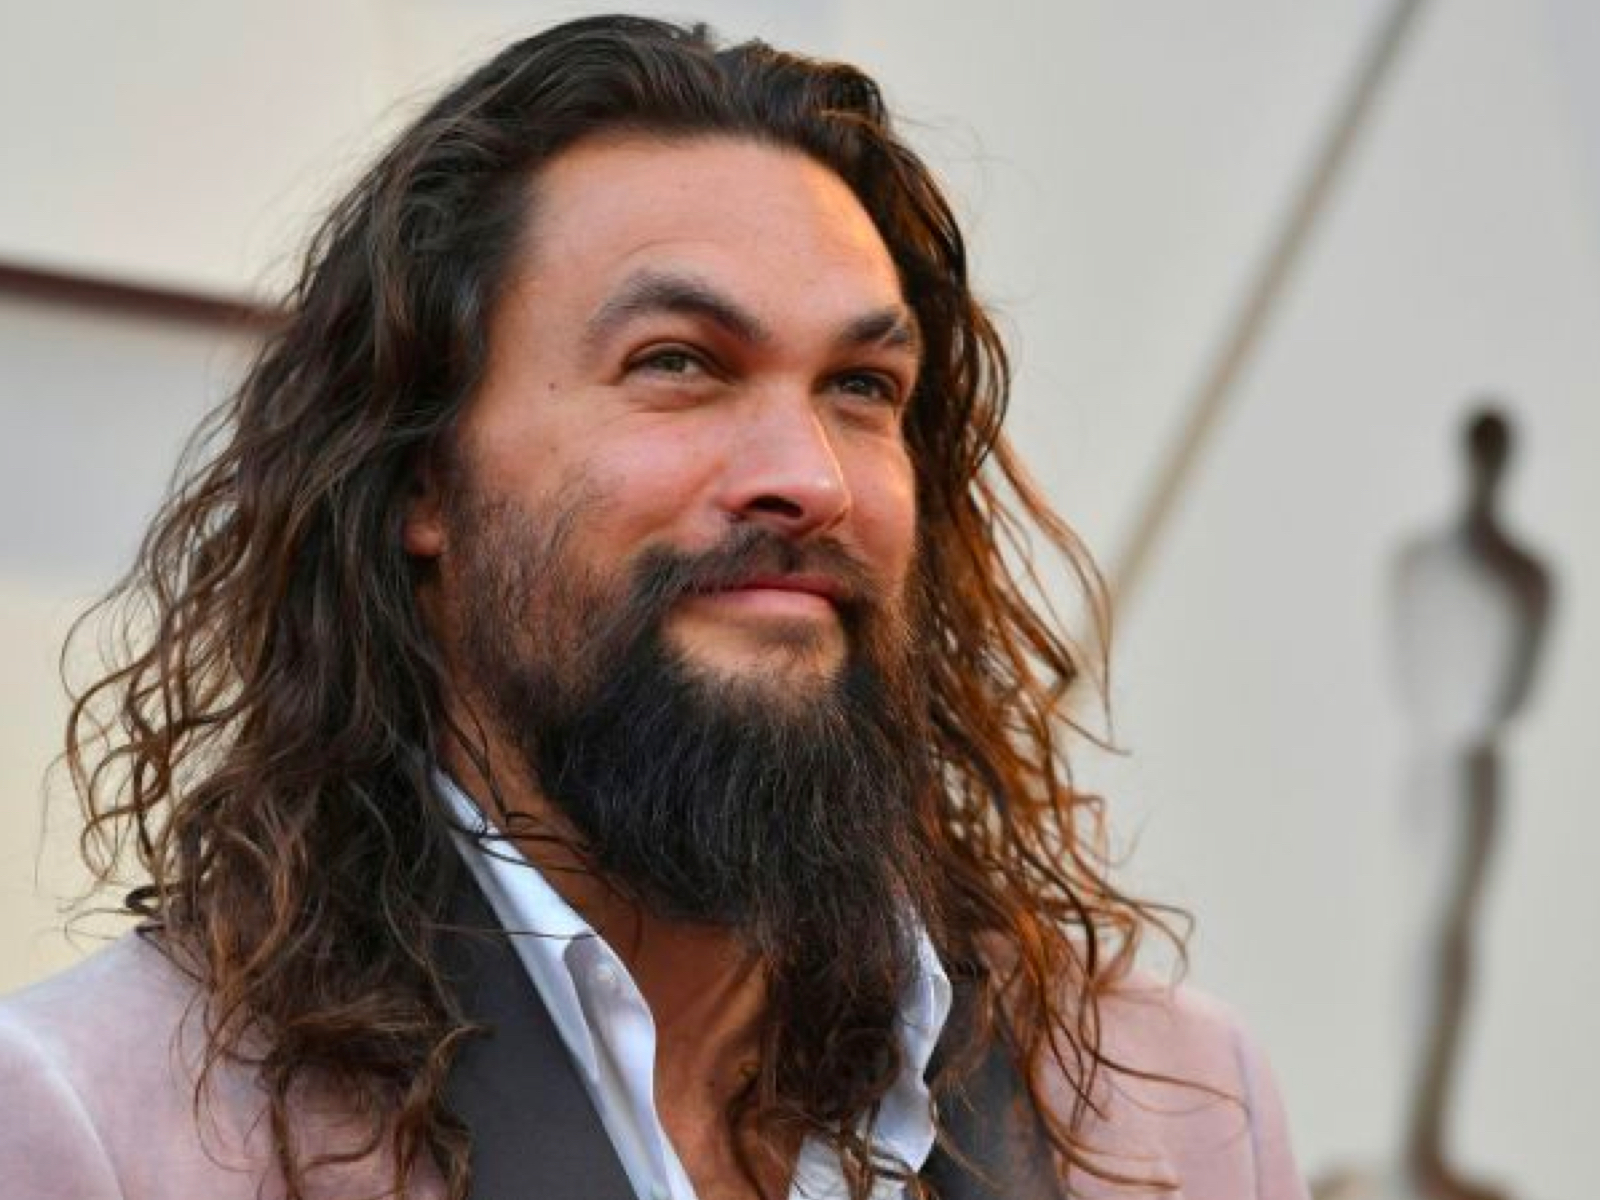 Jason Momoa Hair - Get The Look with Hades Matte Paste Natural Hair Wax